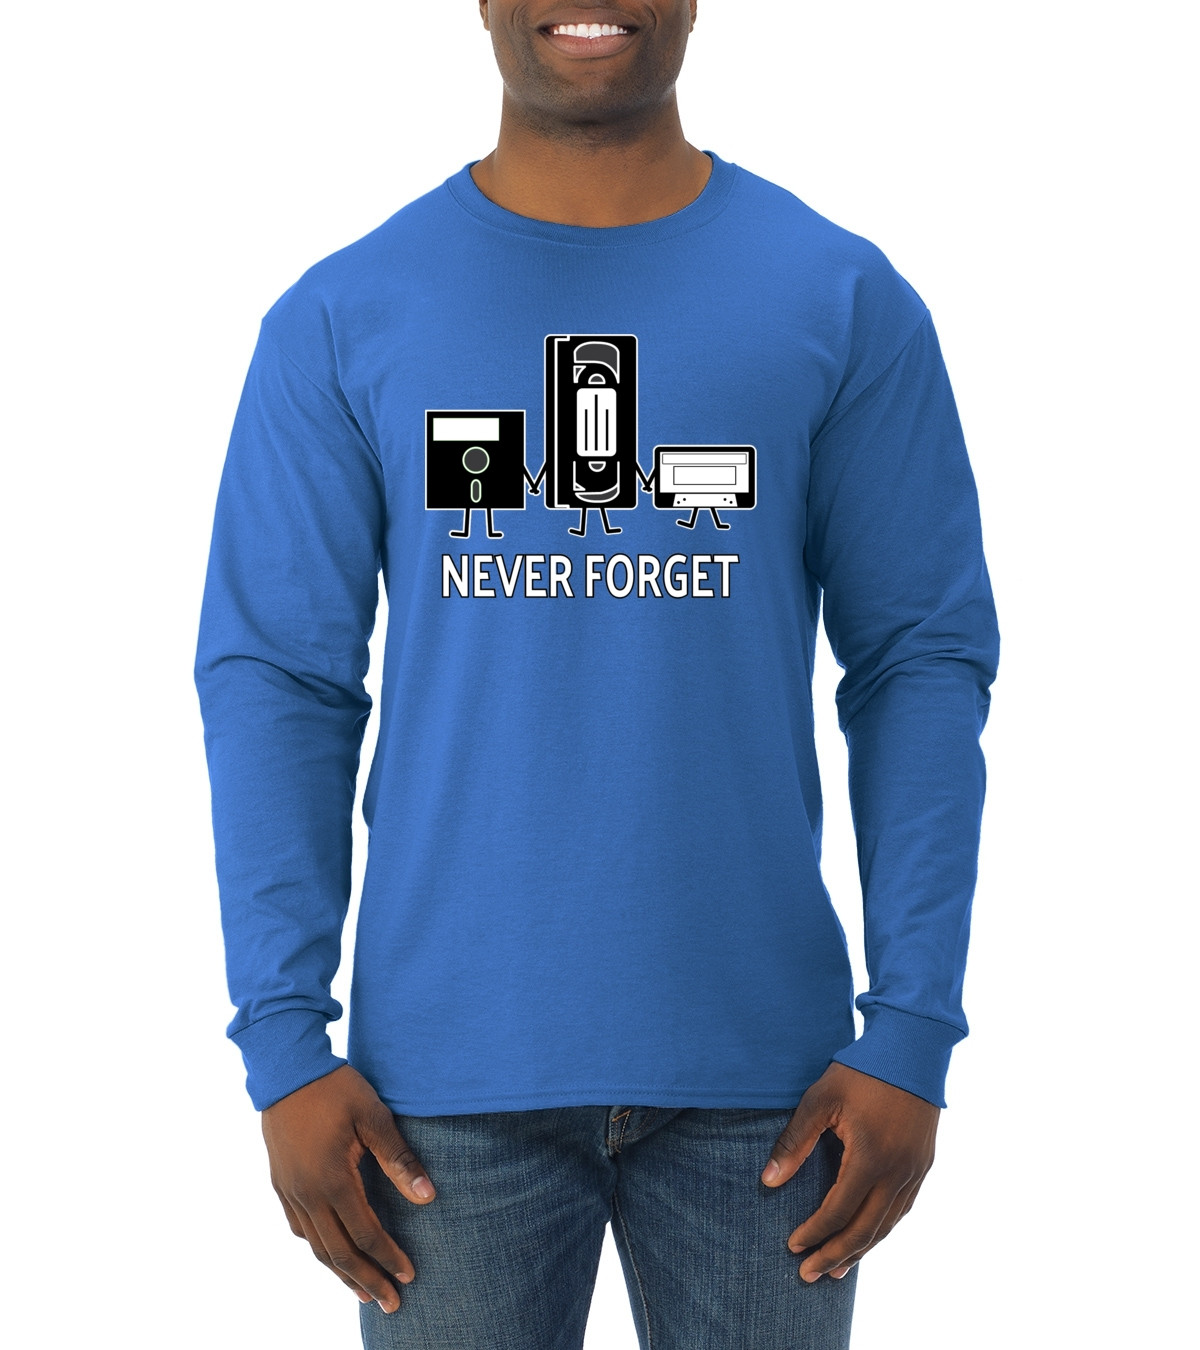 Best ideas about 90'S Mens Hairstyles . Save or Pin Never For Funny 90 s Nostalgia Mens Long Sleeve T Shirt Now.